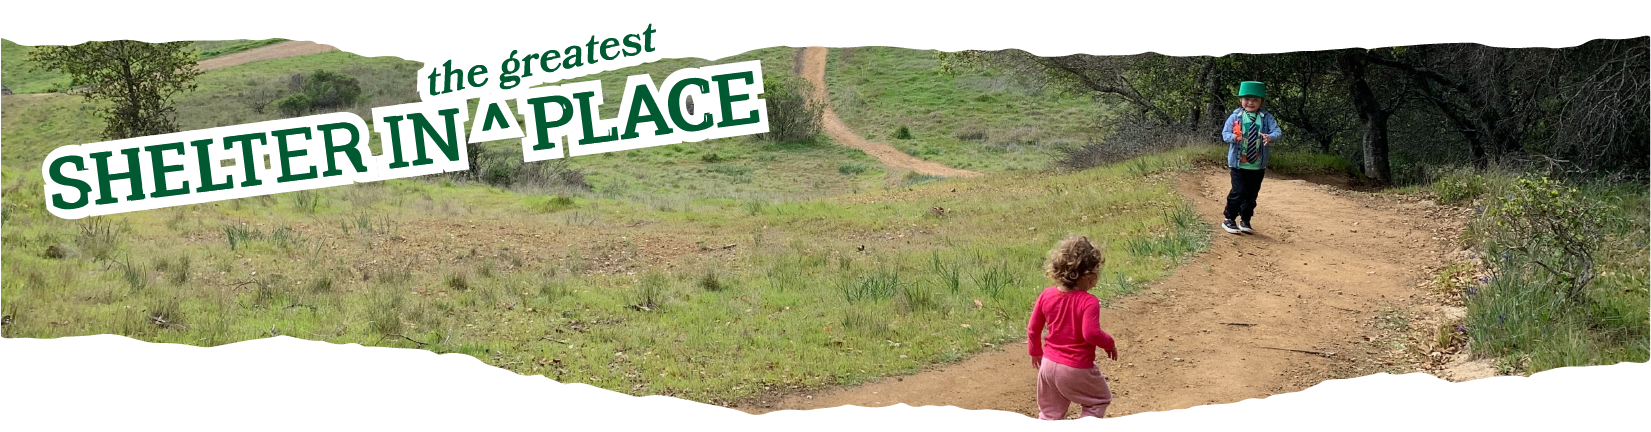 Title: Shelter in the Greatest Place overlaid on a photo of two children running happily down a trail in Marin.